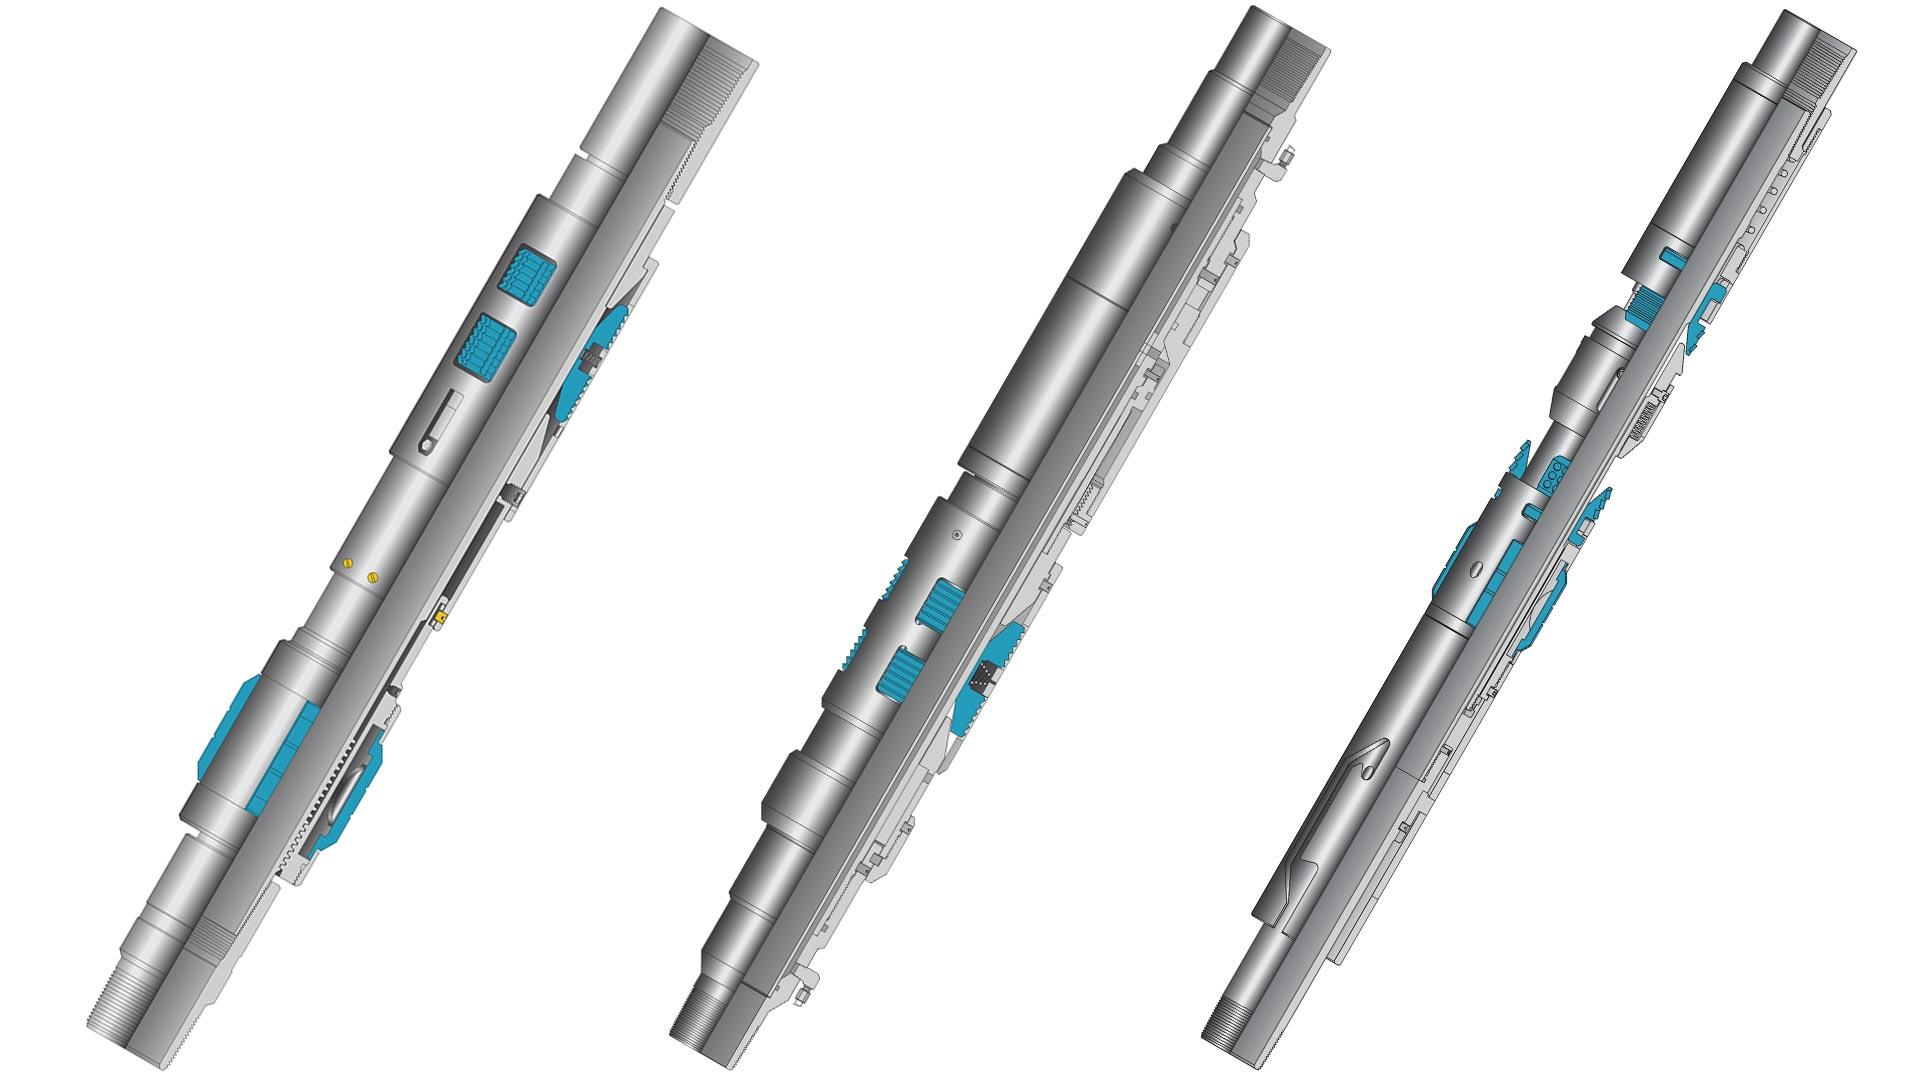 A render of an NAC-1 Tubing Anchor Catcher, an NHA Hydraulic Tubing Anchor, and an NQT Quarter-turn Tubing Anchor